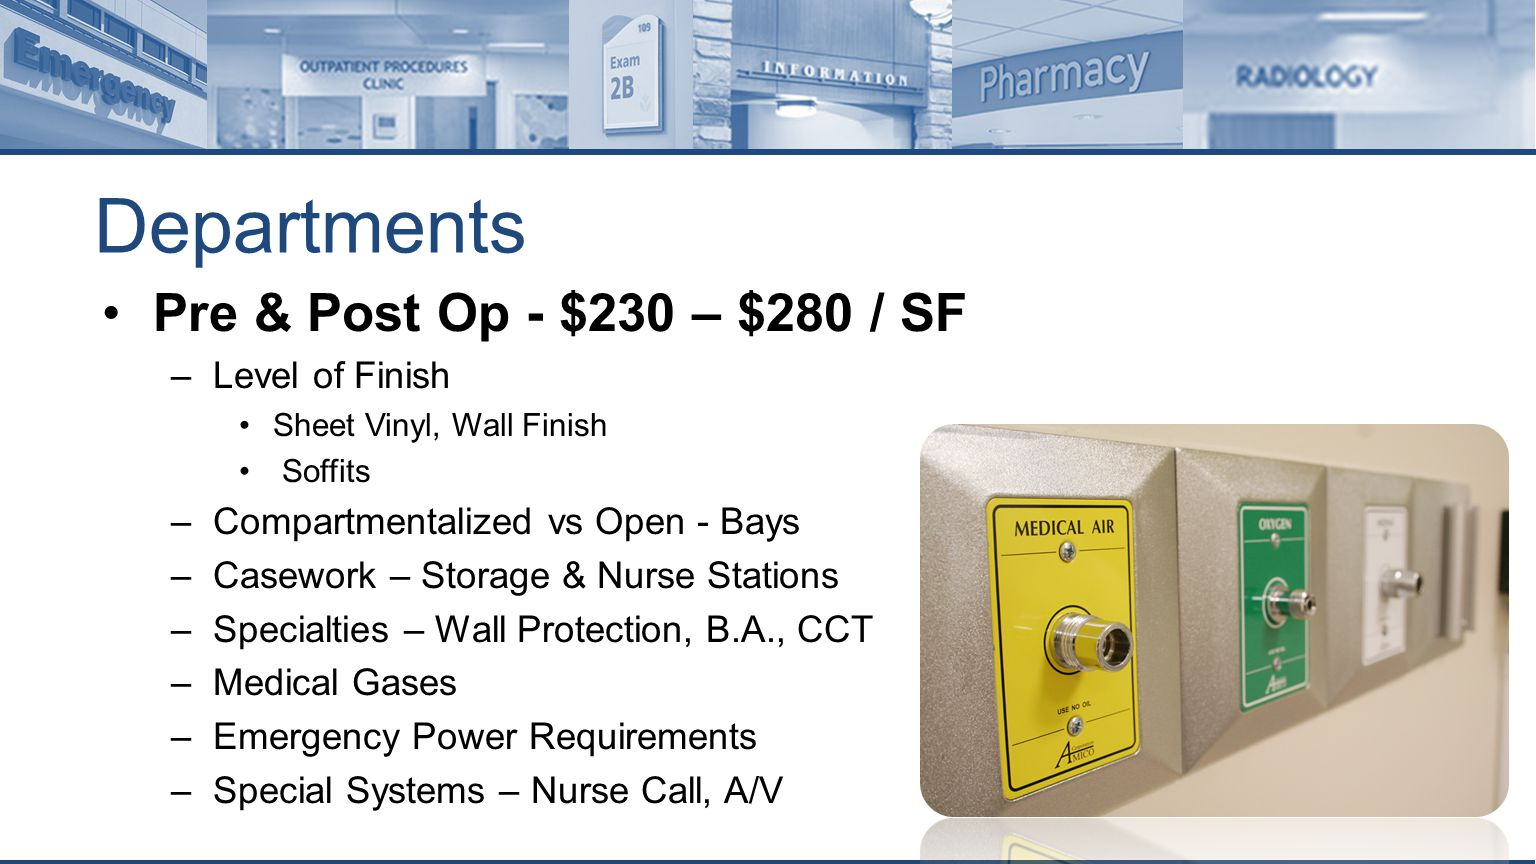 Departments Pre & Post Op - $230 – $280 / SF –Level of Finish Sheet Vinyl, Wall Finish Soffits –Compartmentalized vs Open - Bays –Casework – Storage & Nurse Stations –Specialties – Wall Protection, B.A., CCT –Medical Gases –Emergency Power Requirements –Special Systems – Nurse Call, A/V